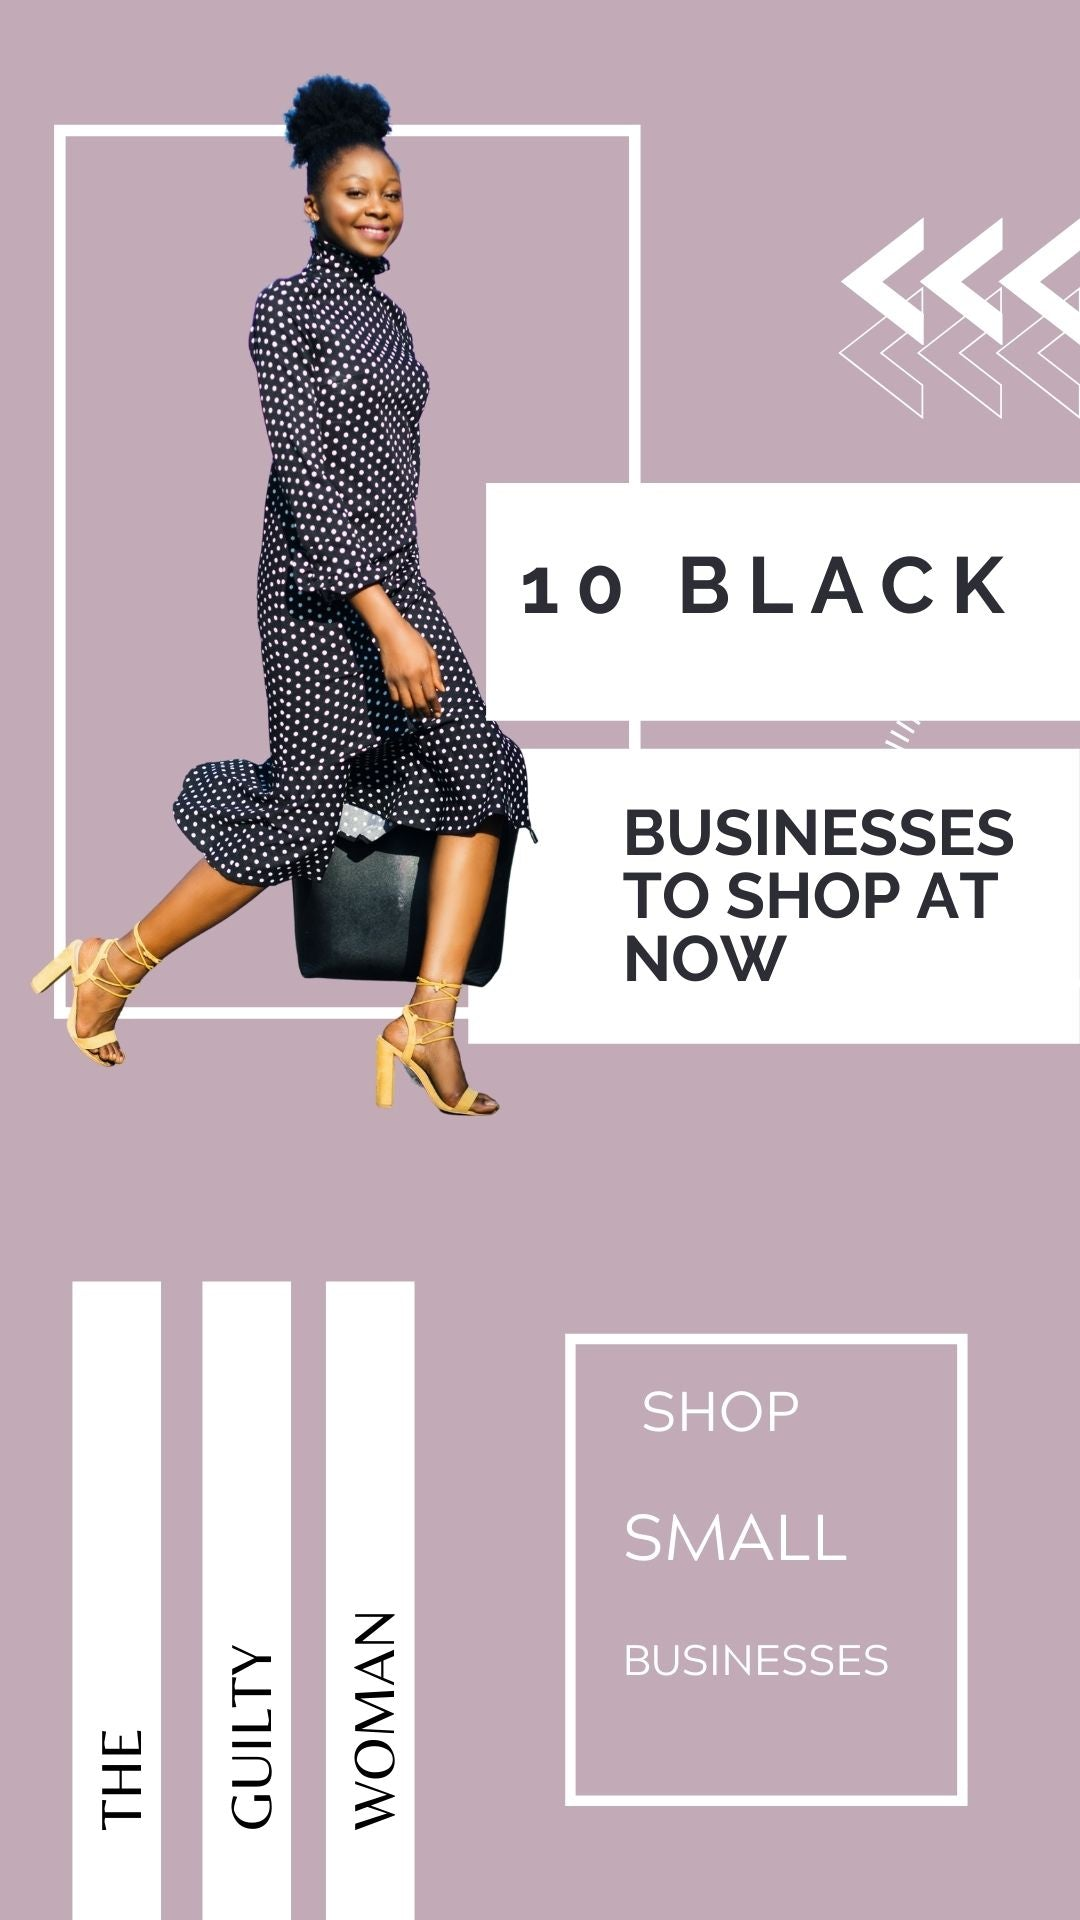 10 black businesses to shop at now   The Guilty Woman